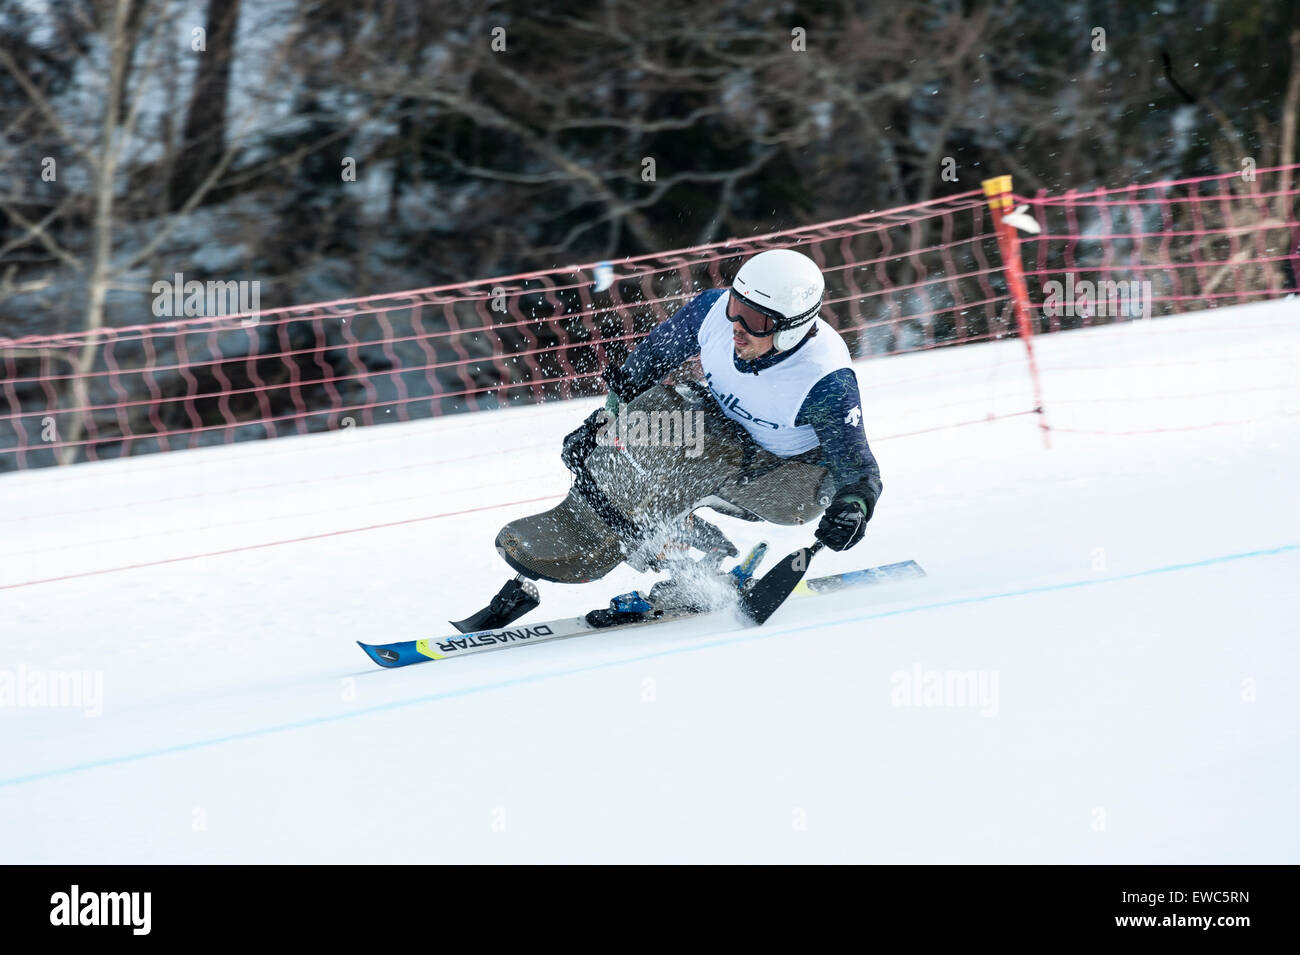 A disabled competitor using specially-adapted ski equipment, racing downhill in a giant slalom race - Stock Image